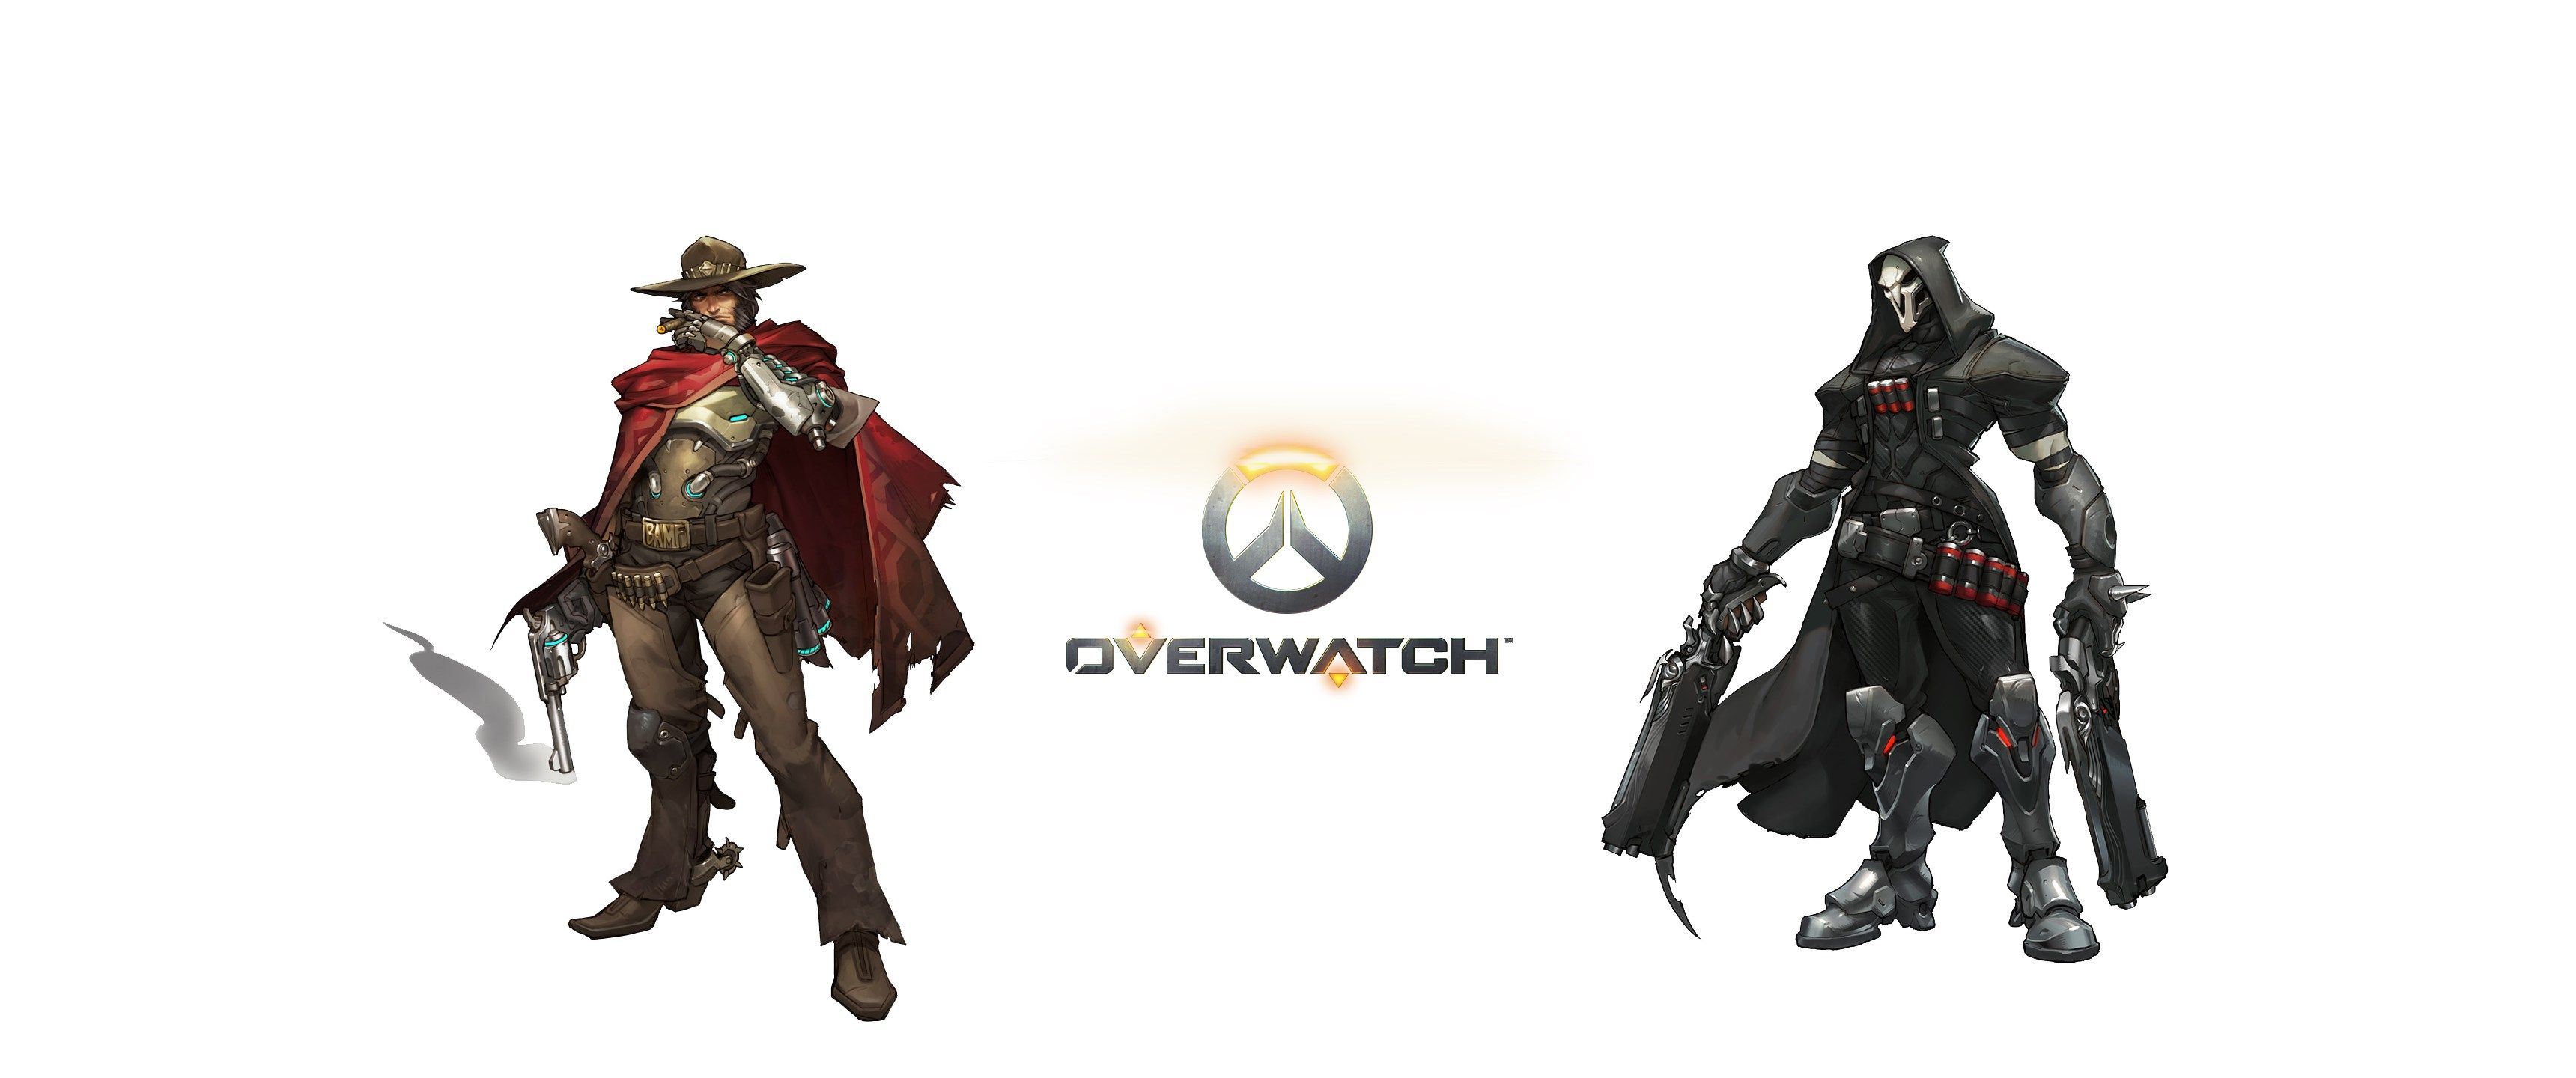 3440x1440 free wallpaper and screensavers for overwatch